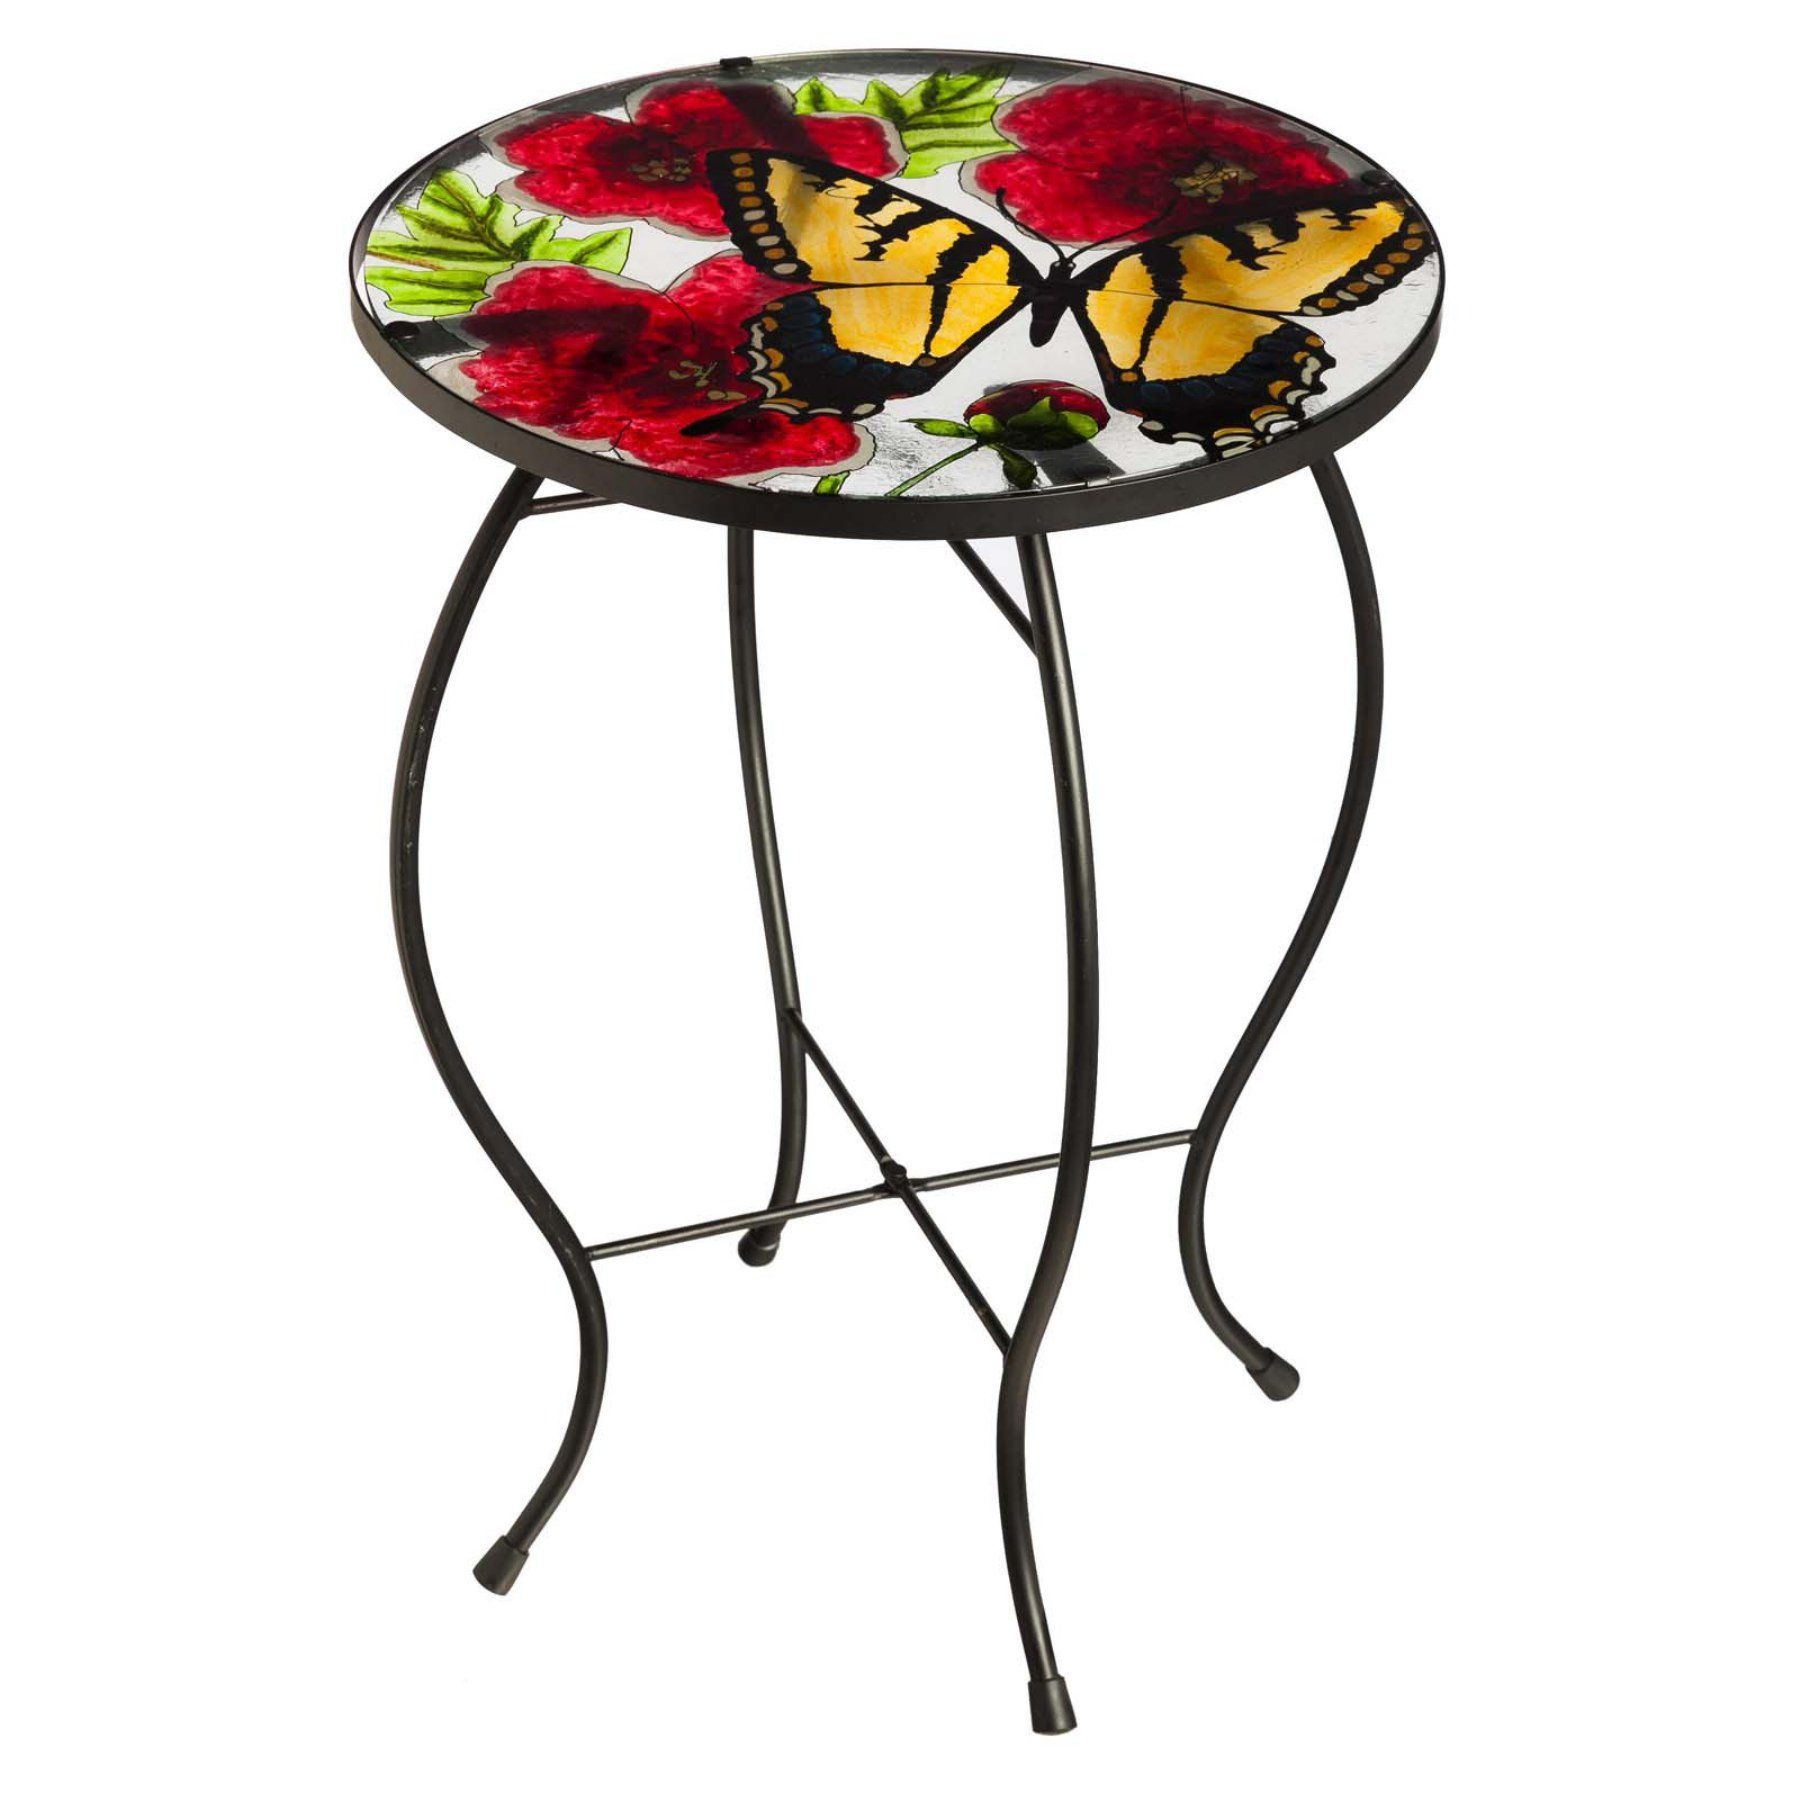 Outdoor Evergreen Enterprises Butterfly Flutter Glass Table - 84G604